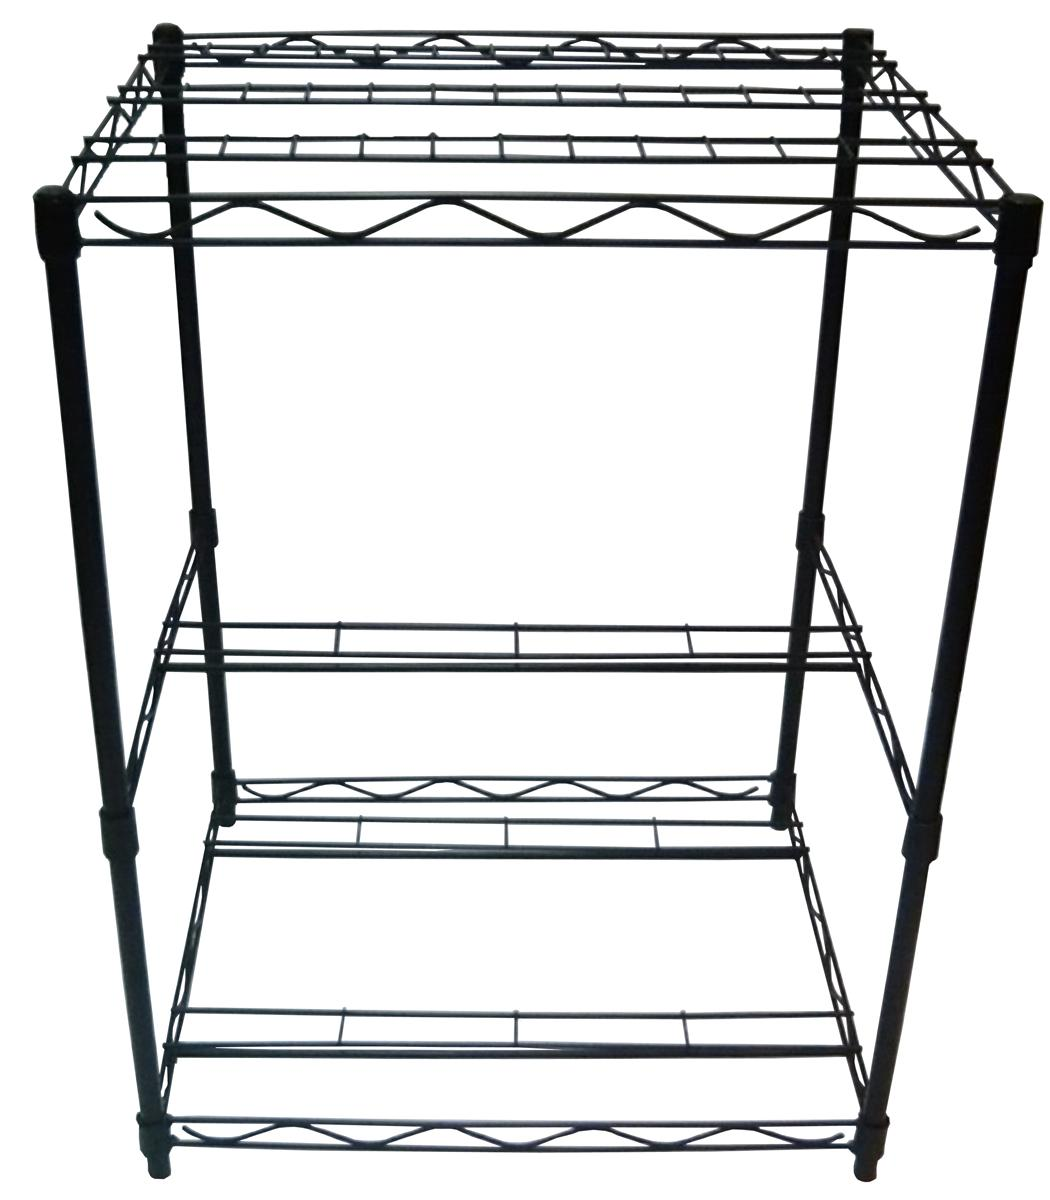 Worldwide Sourcing PS-0011 Garden Tool Rack, Black by Worldwide Sourcing